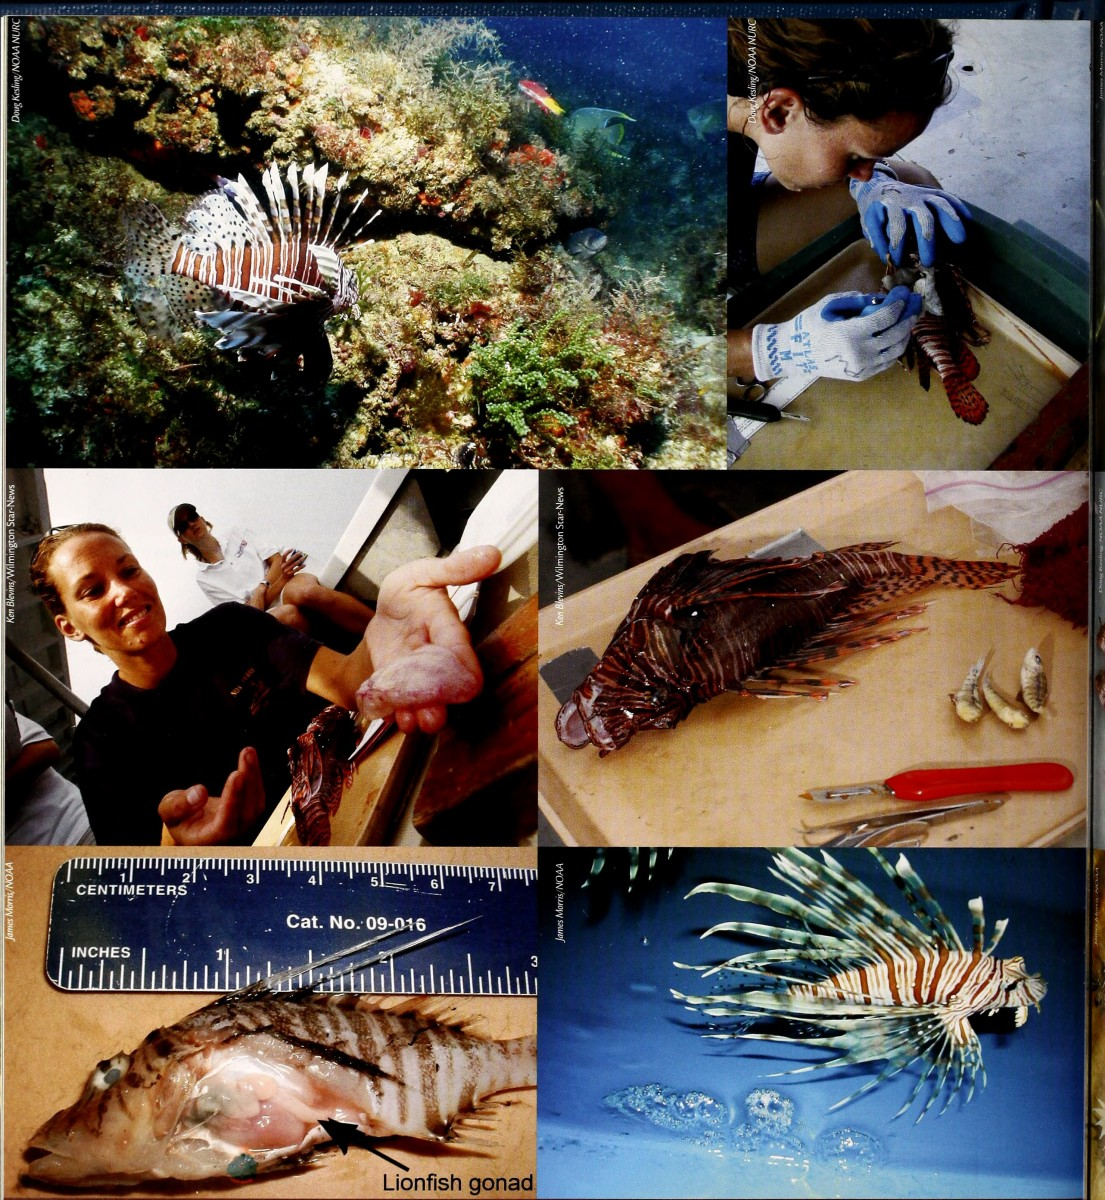 Left Middle: Egg sac of a female lionfish containing up to 20000 eggs. Bottom Right: Two egg balls floating alongside the lionfish